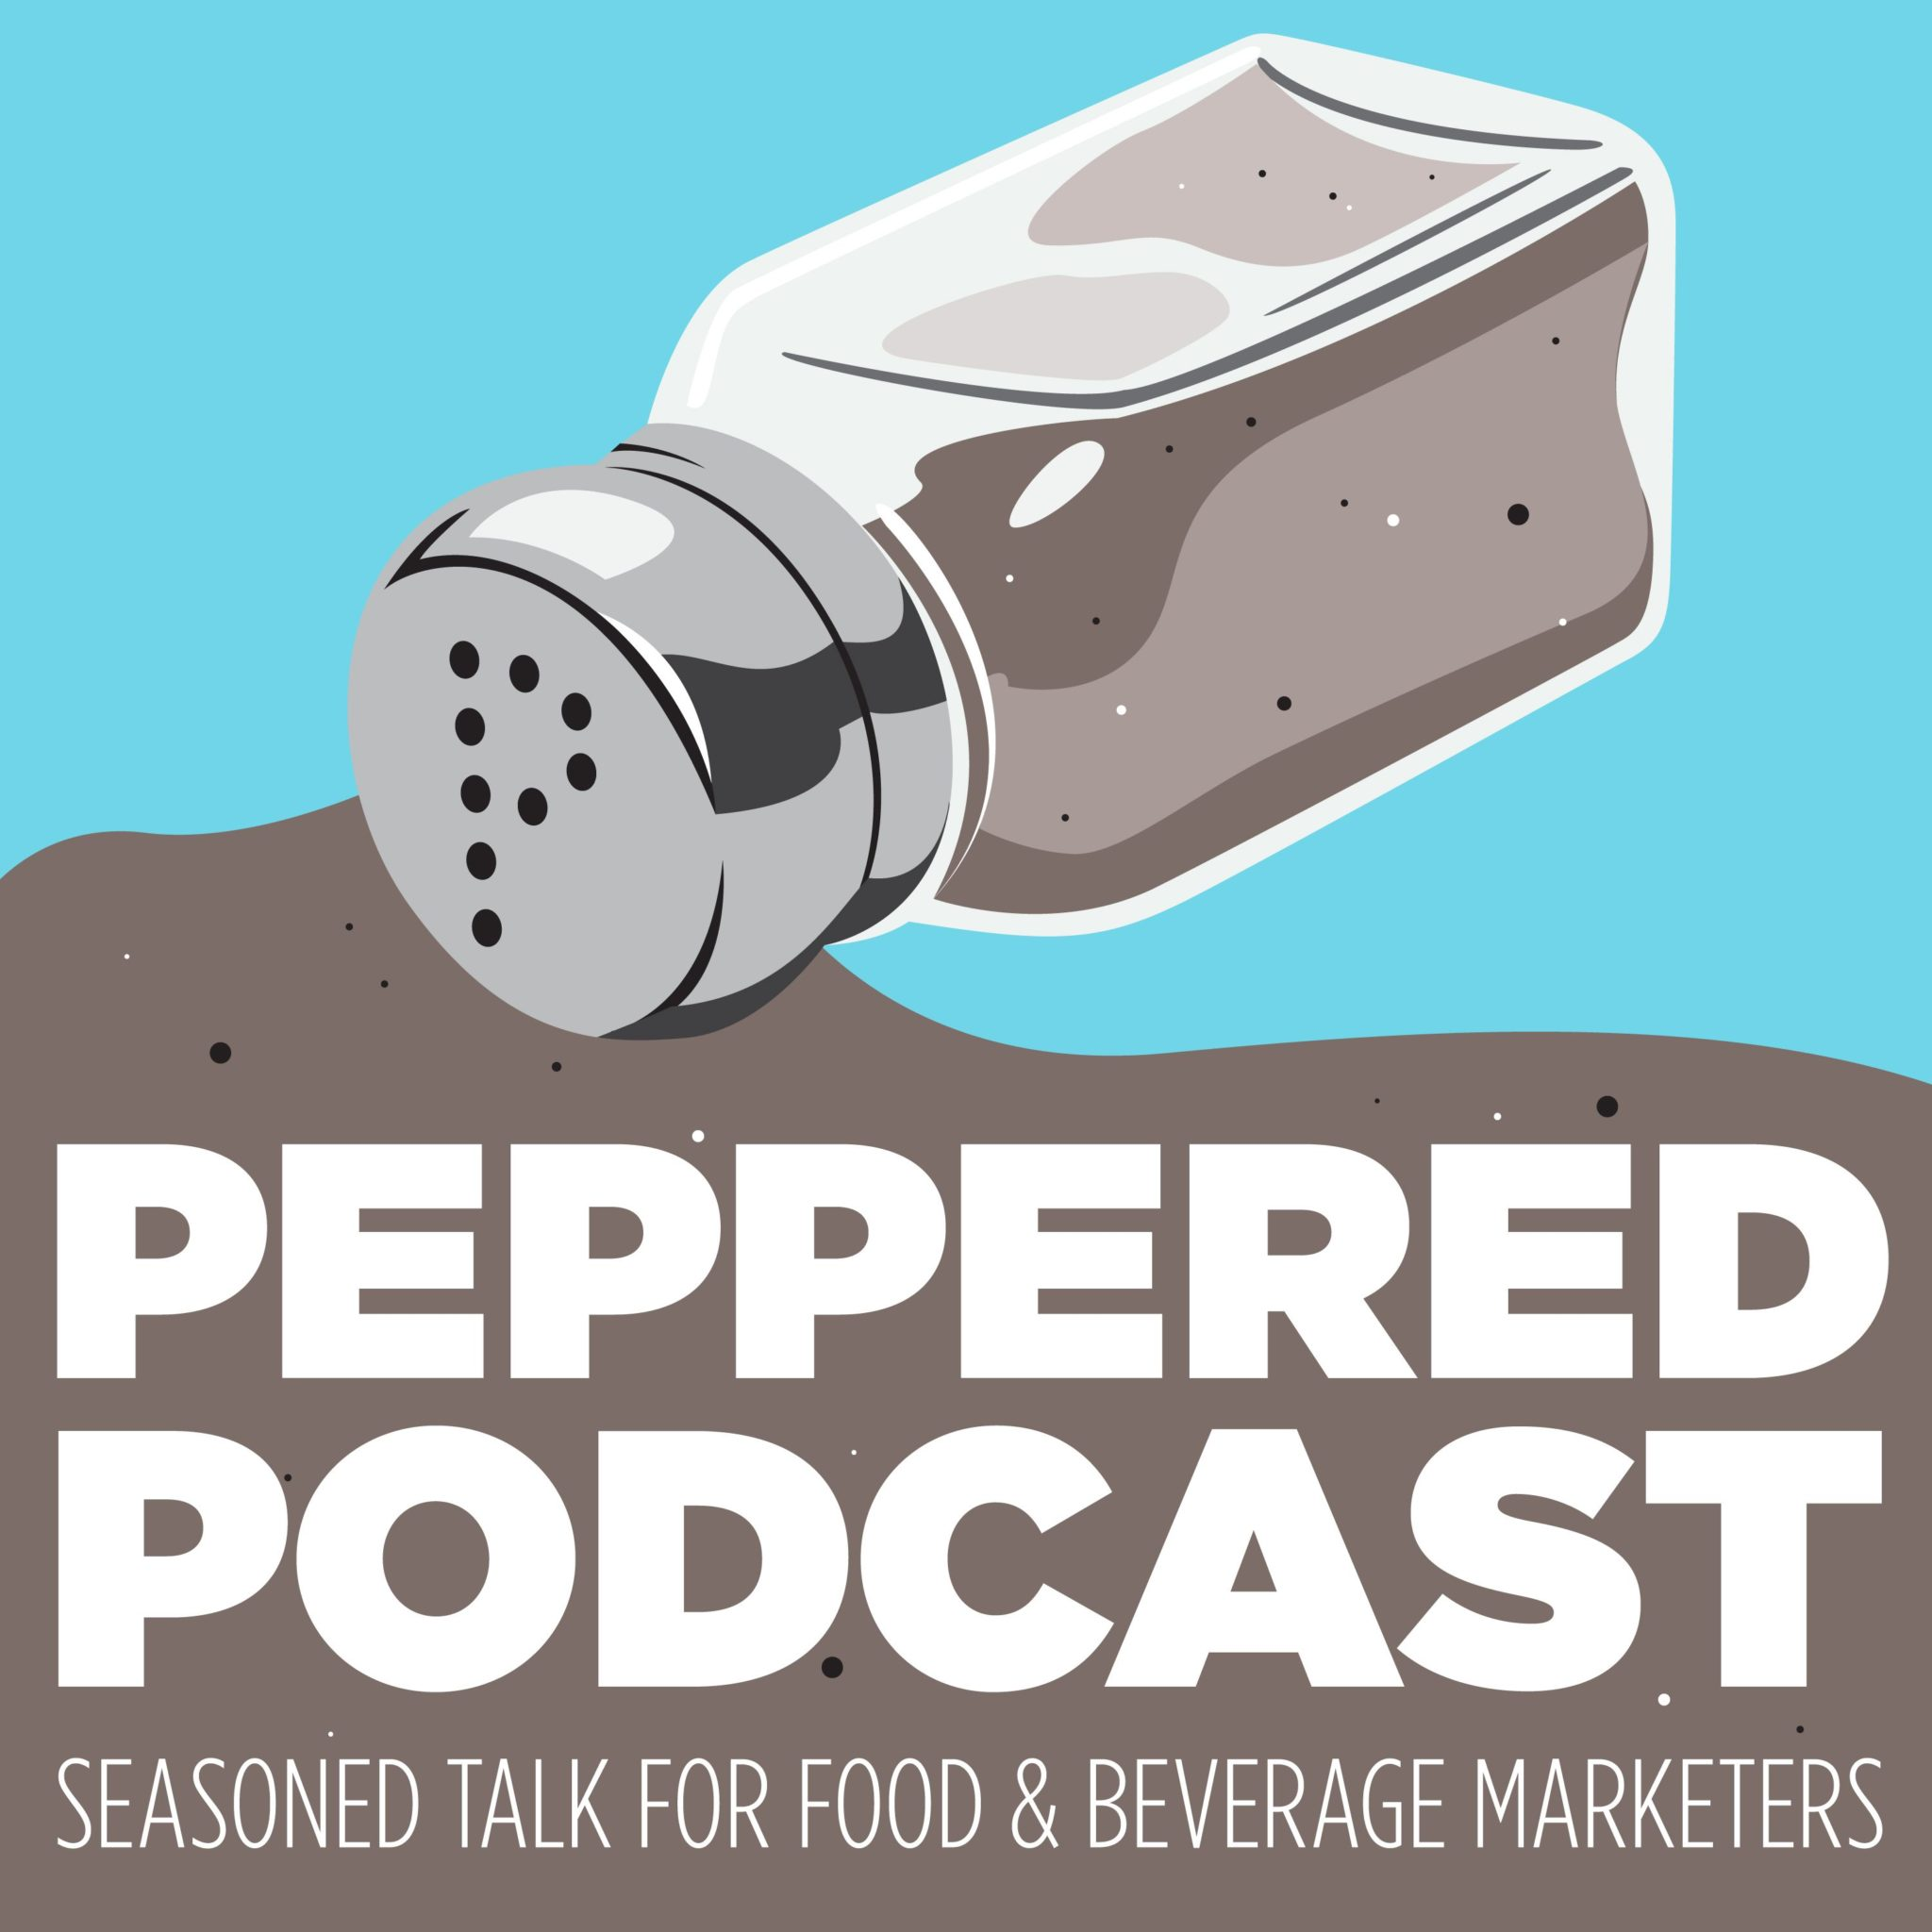 The Peppered Podcast